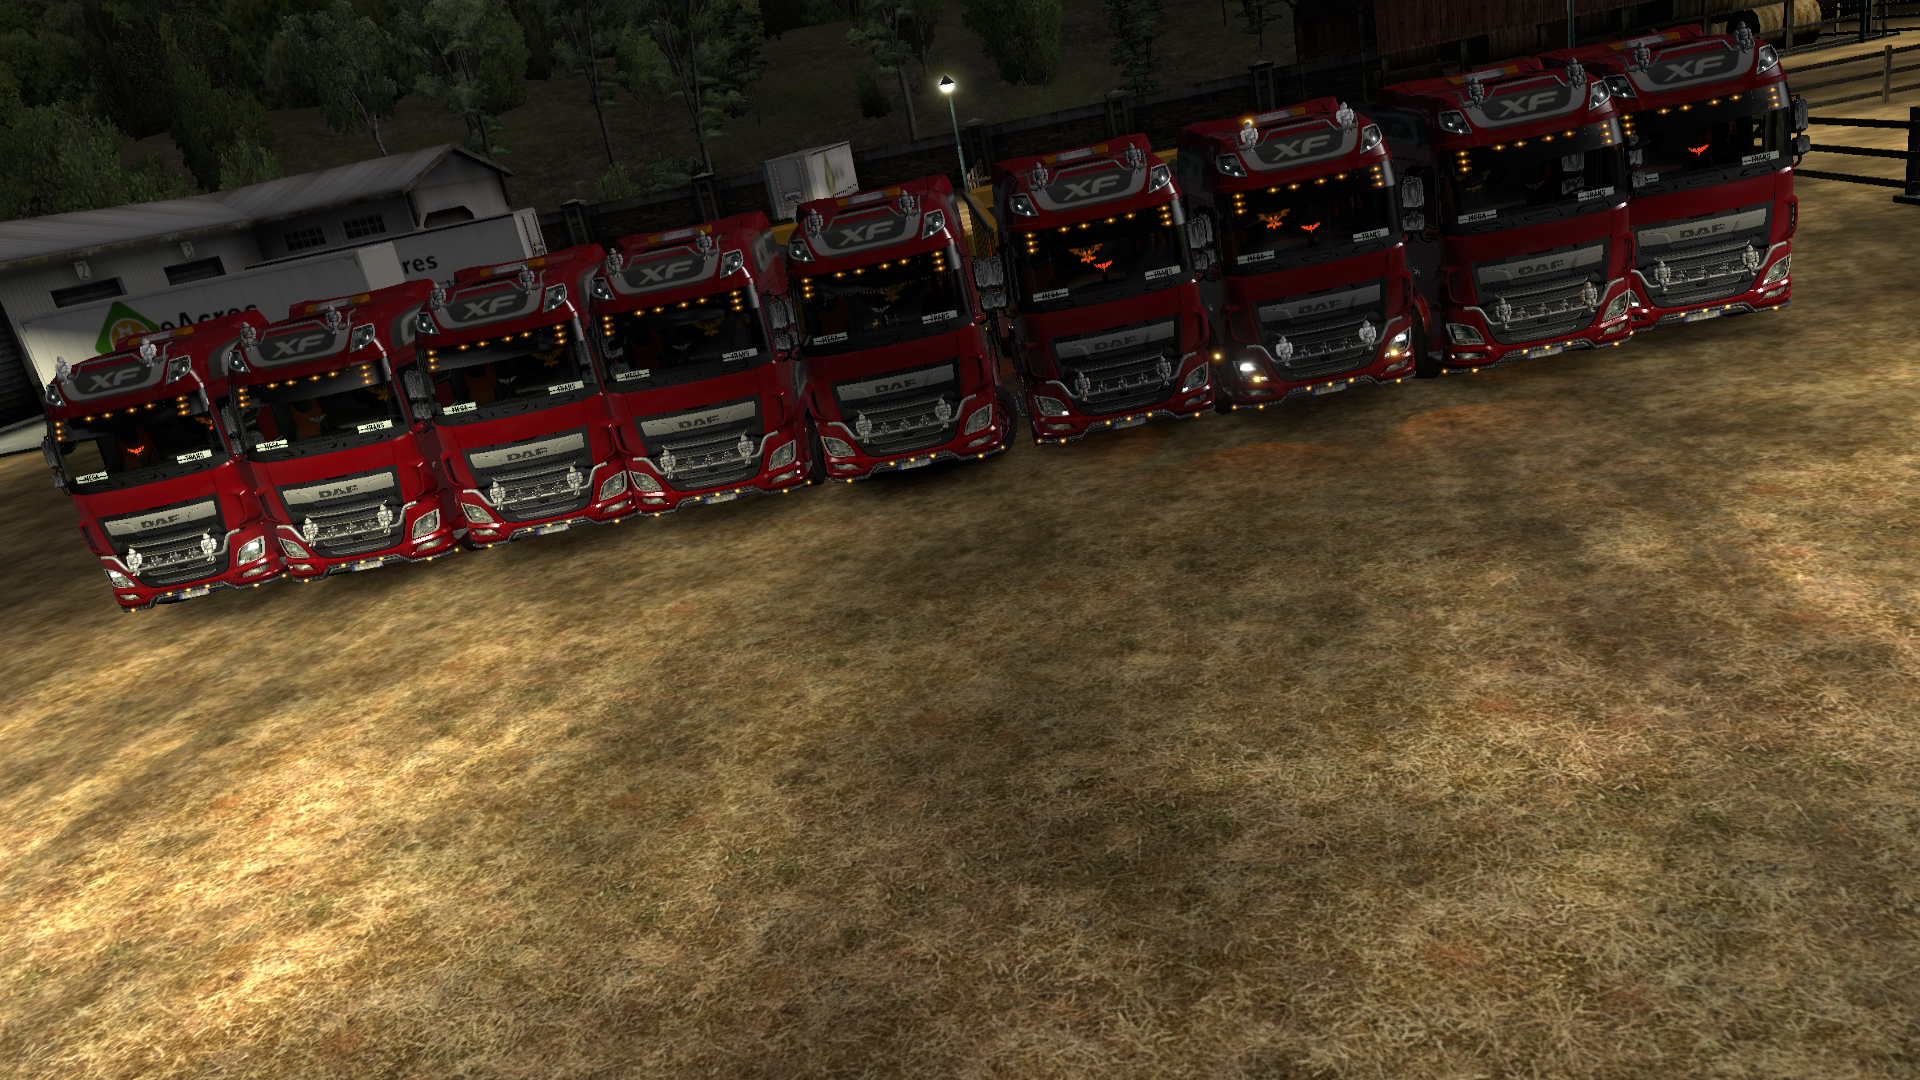 ets2_20190116_225654_00.png